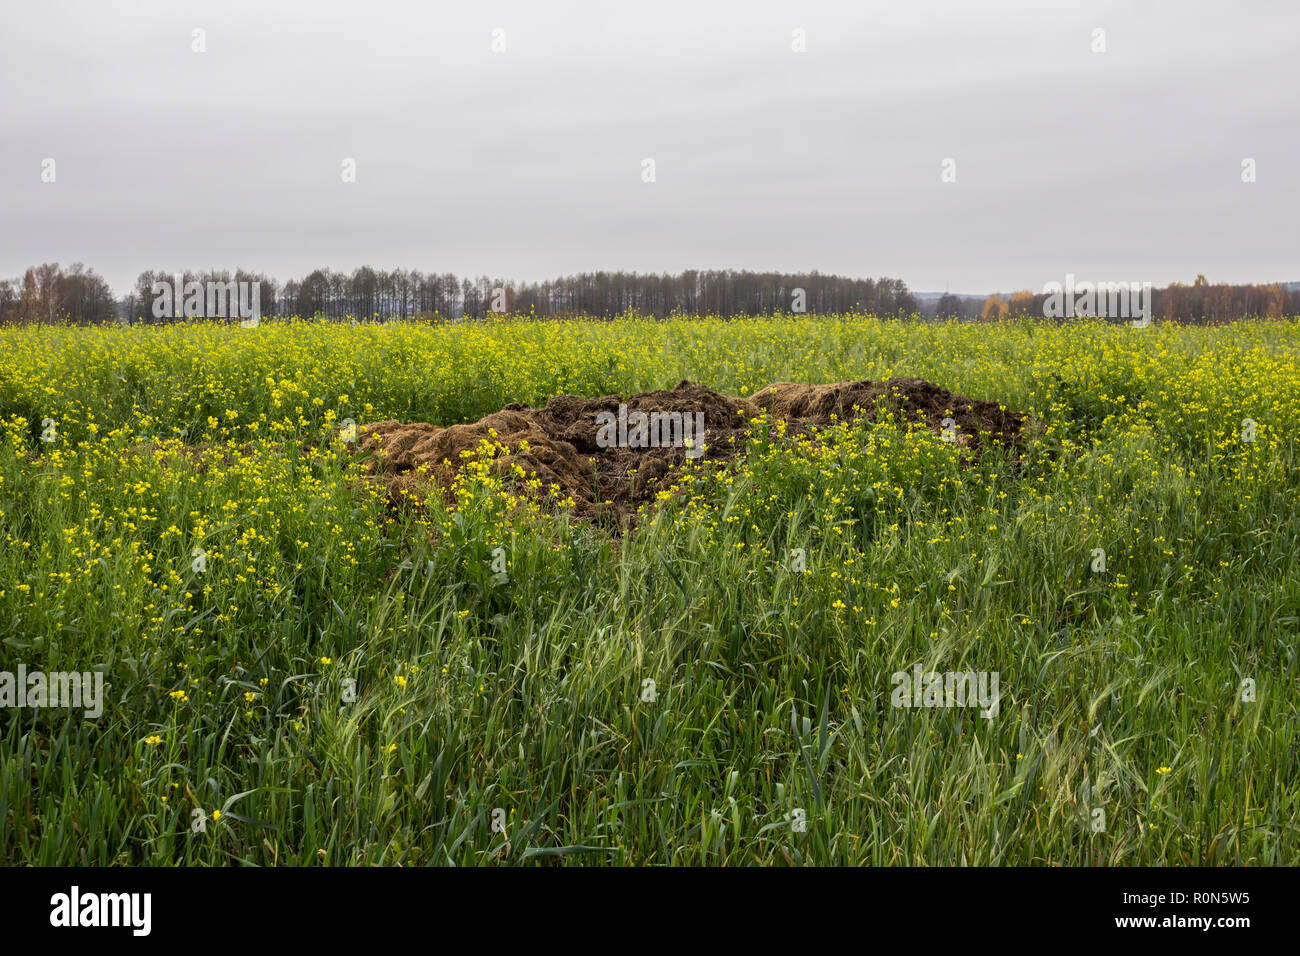 Late autumn. A large pile of fertilizer from cow dung and straw on the field of blooming yellow mustard (Sinapis alba). Podlasie, Poland. Stock Photo